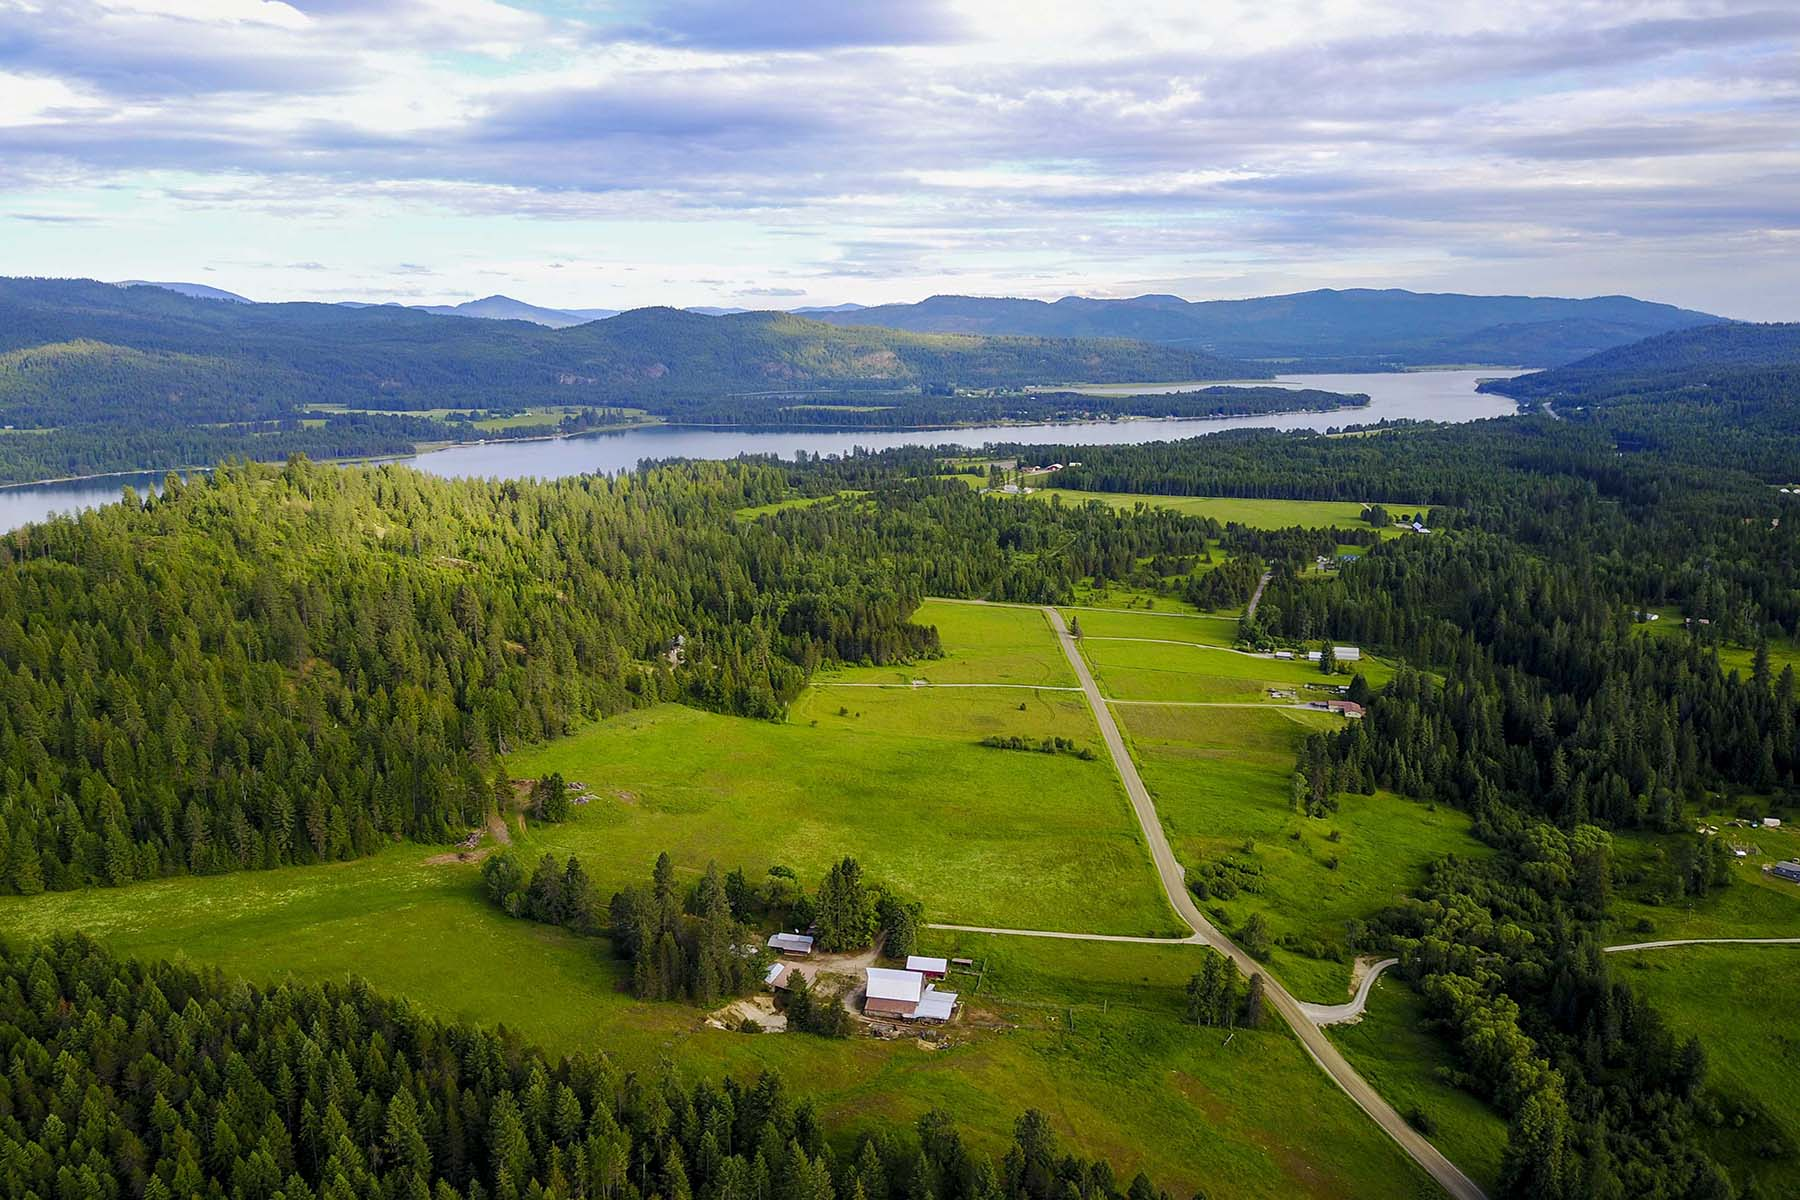 Single Family Home for Sale at Picturesque Horse Property 3315 Wrenco Loop Road 48 acres, Sandpoint, Idaho, 83864 United States